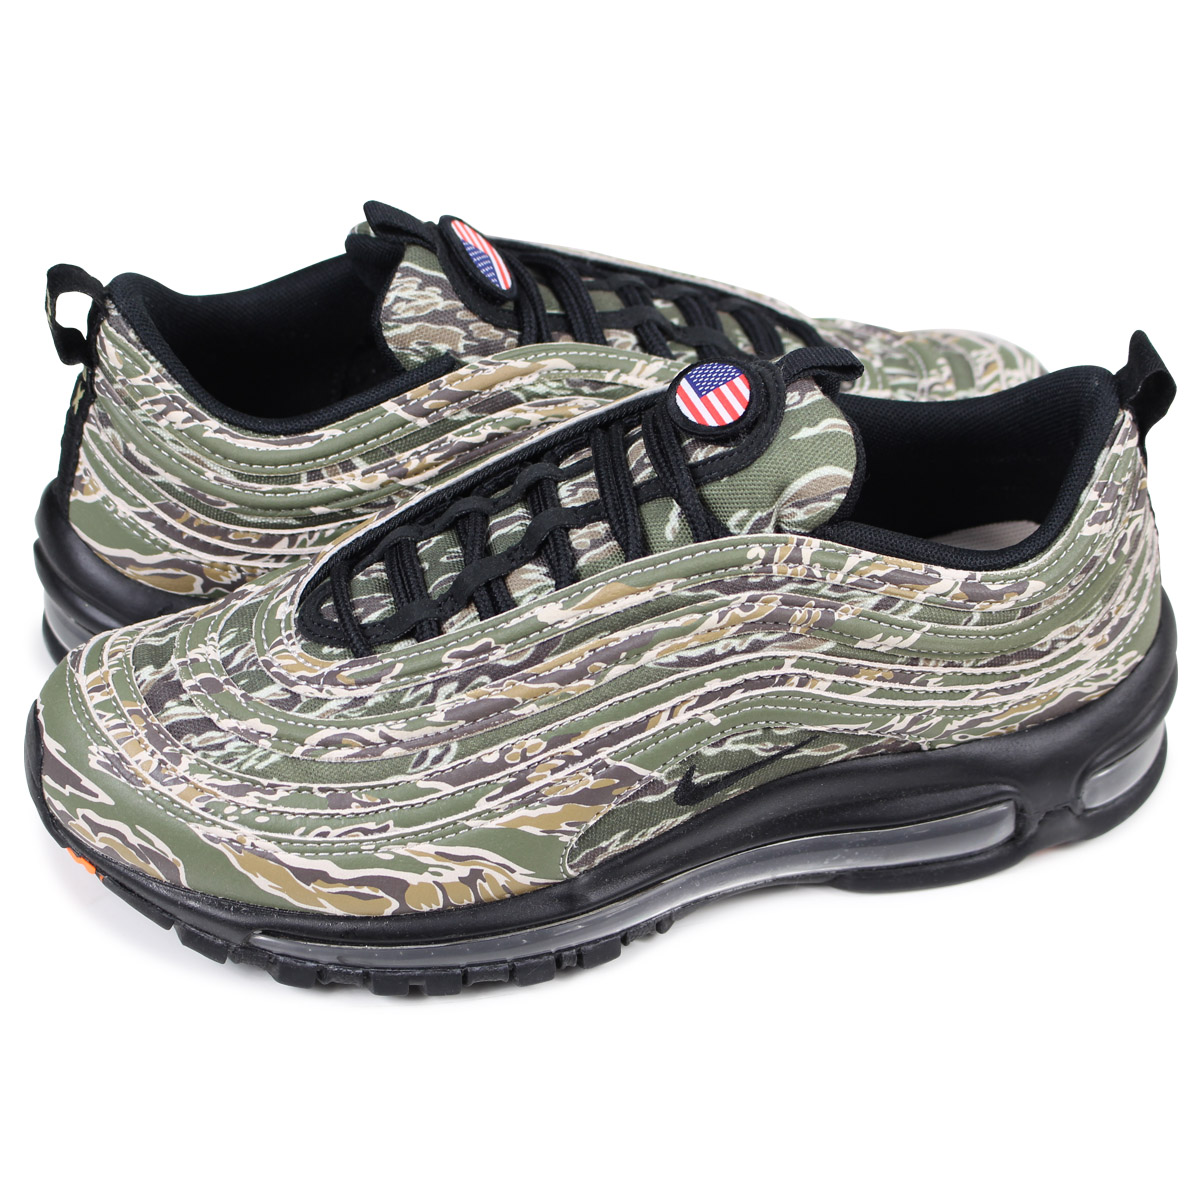 NIKE AIR MAX 97 QS COUNTRY CAMO PACK Kie Ney AMAX 97 sneakers men AJ2614 205 duck